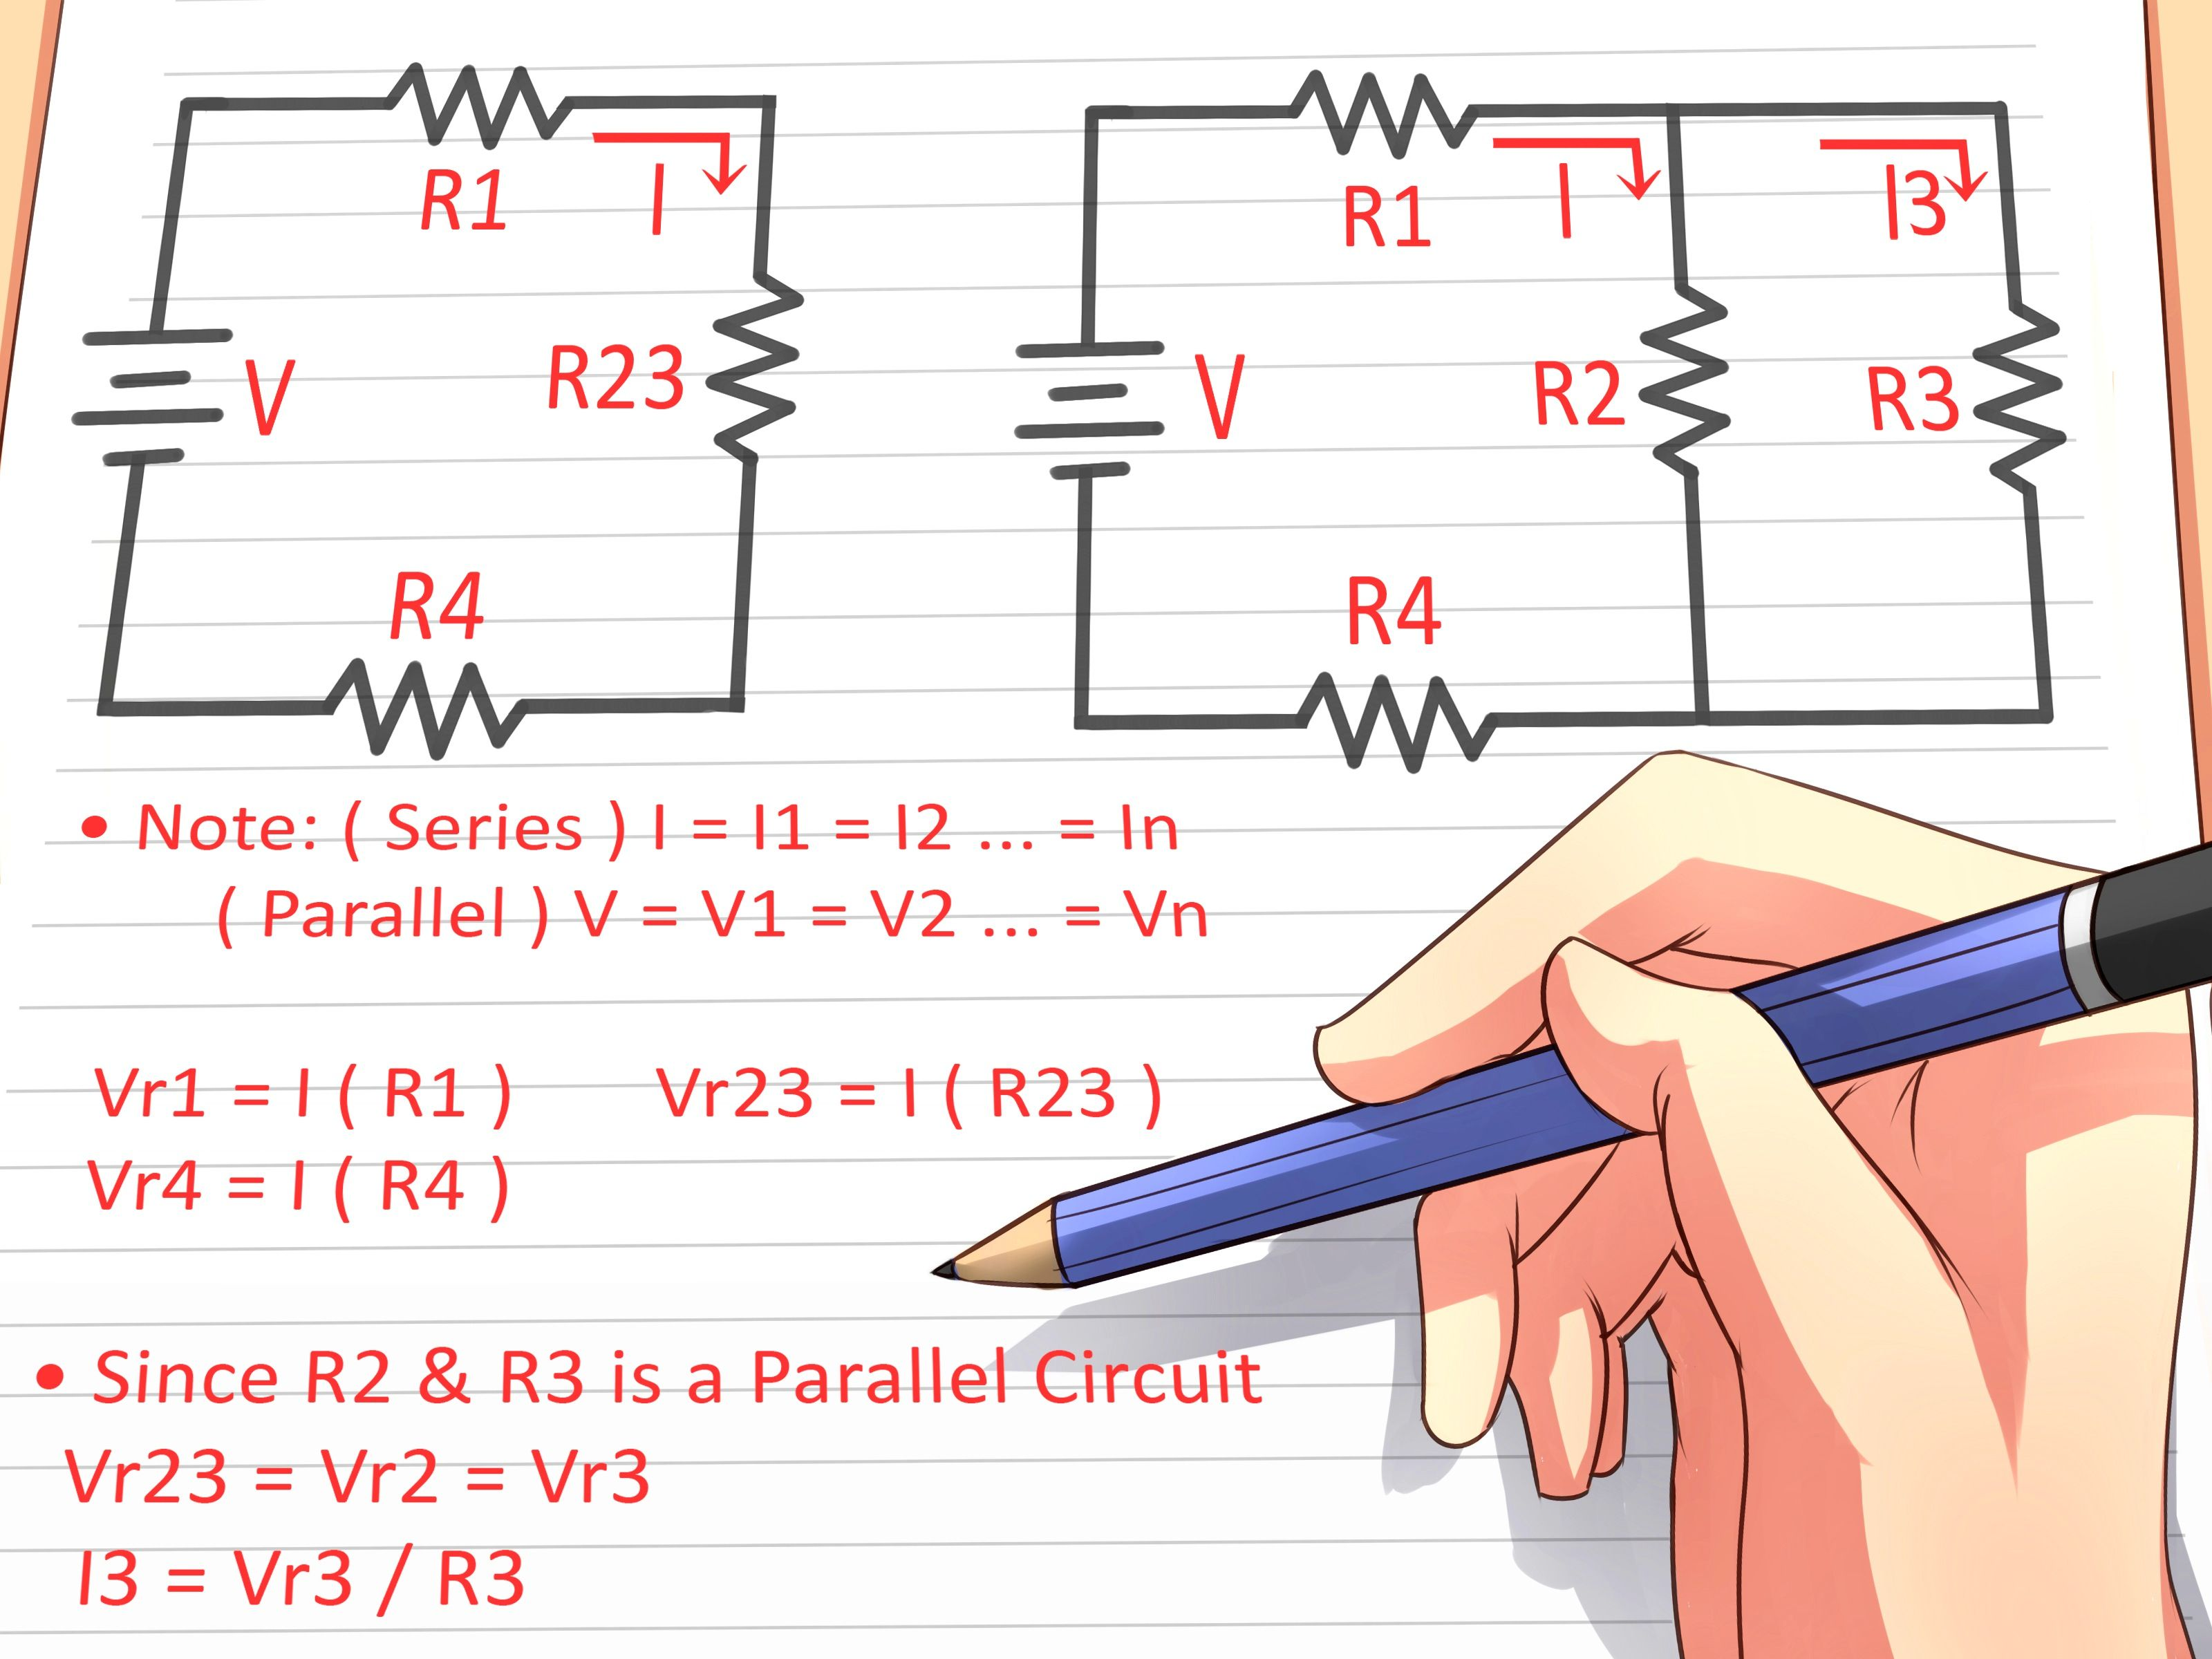 Component How To Analyze Resistive Circuits Using Ohms Law 3 Steps Capacitor Led Circuit Find Voltage Drop In Parallel Series Across Resistor Amperage A Calculation